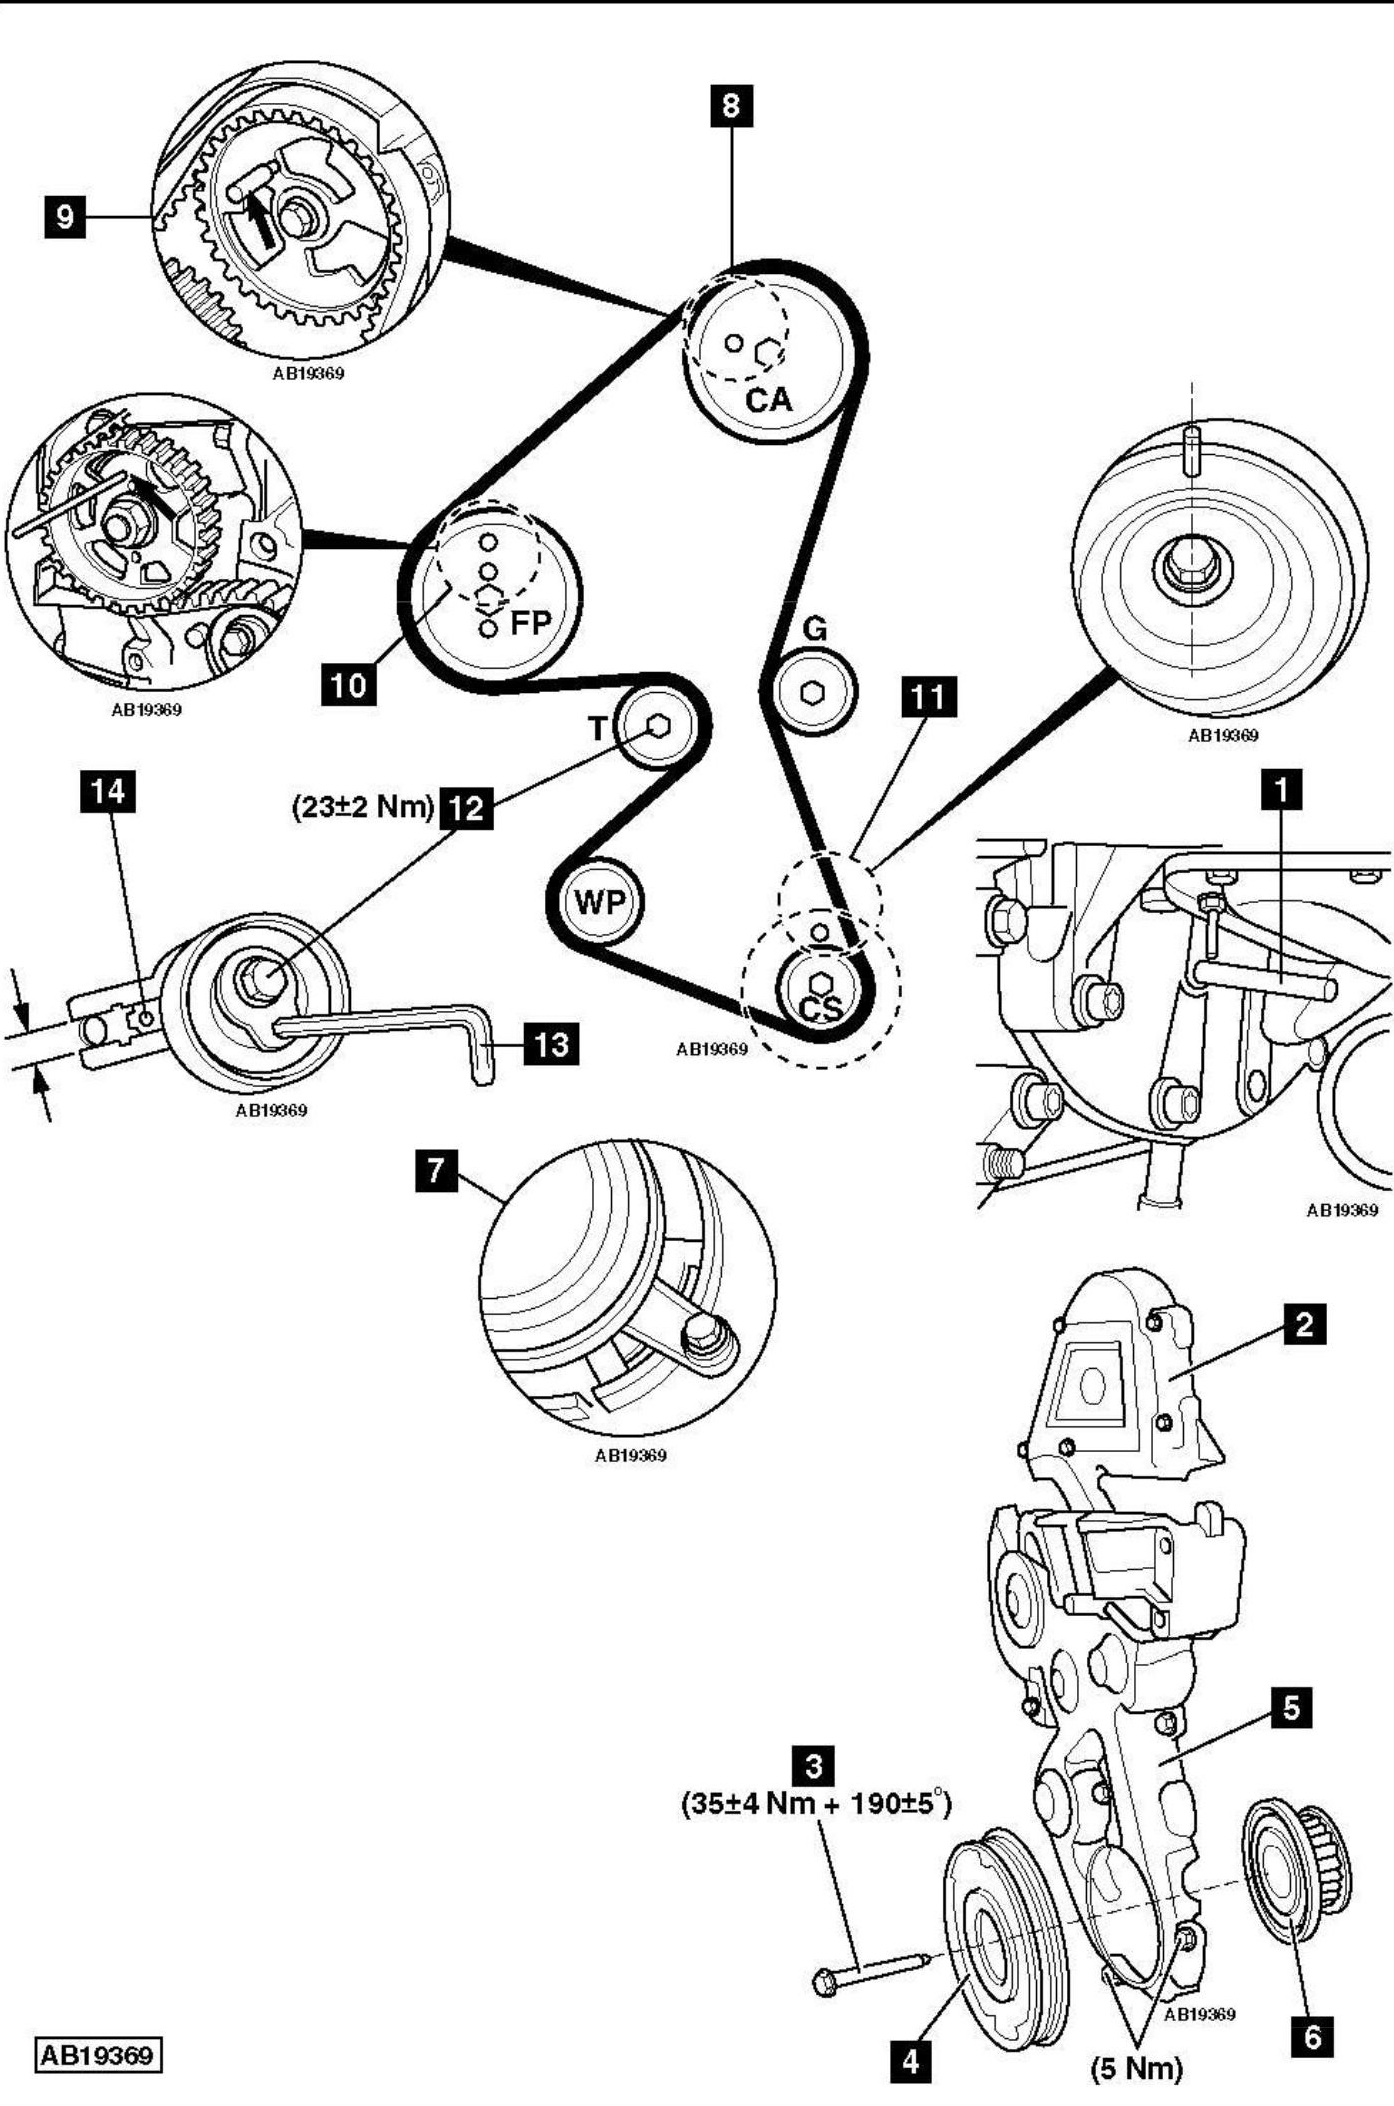 Kubota Rtv 1100 Fuse Box Location on 1964 falcon wiring diagram